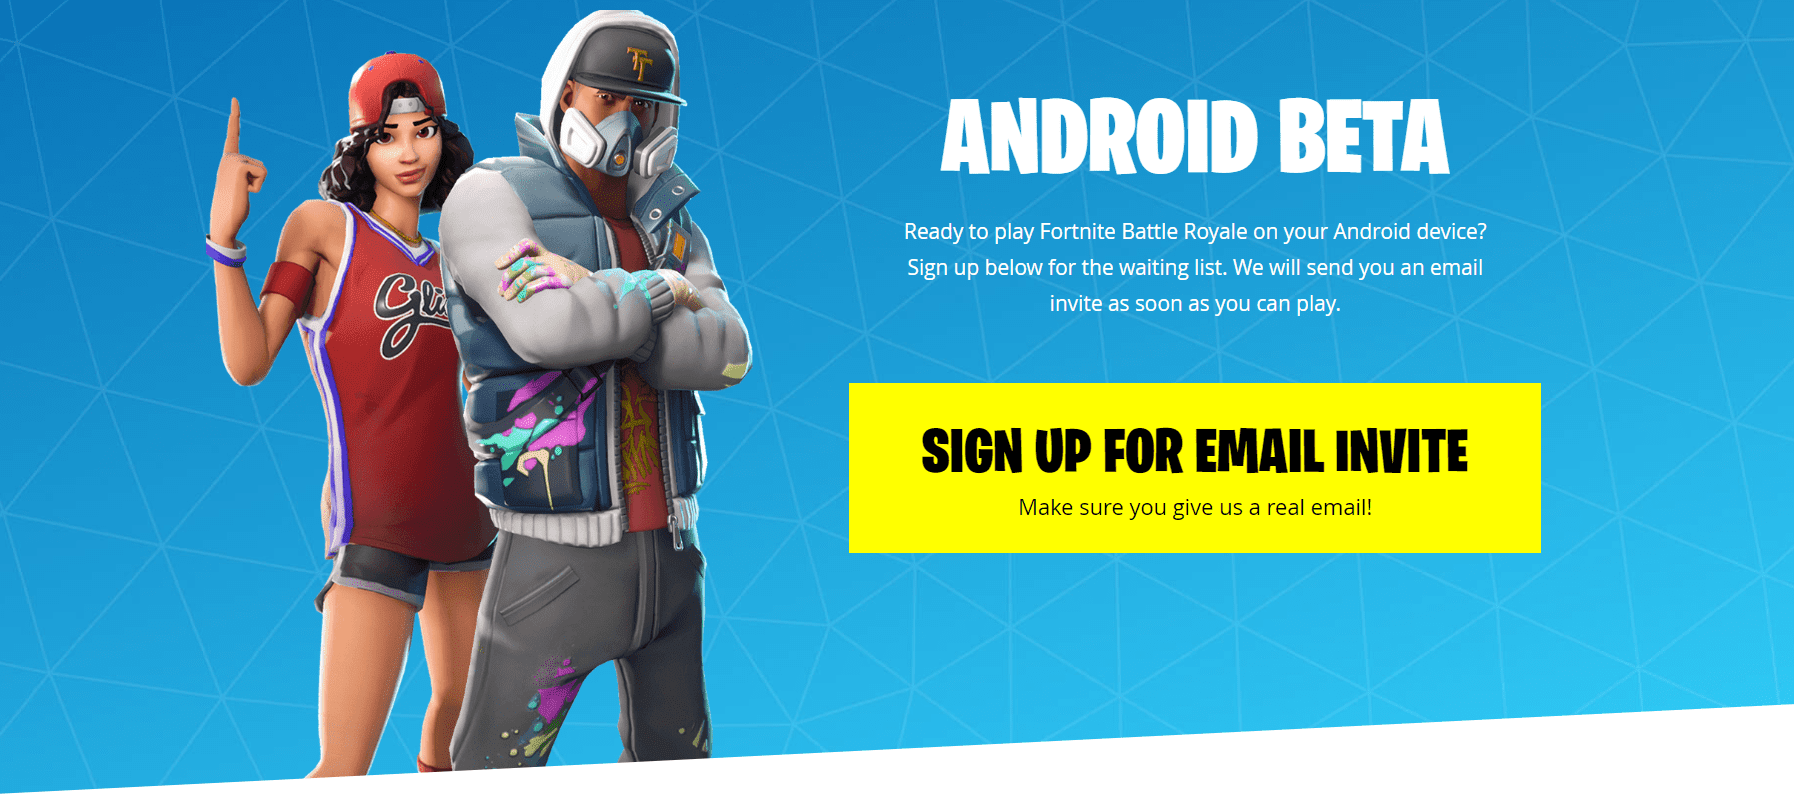 Fortnite APK Download - How to install